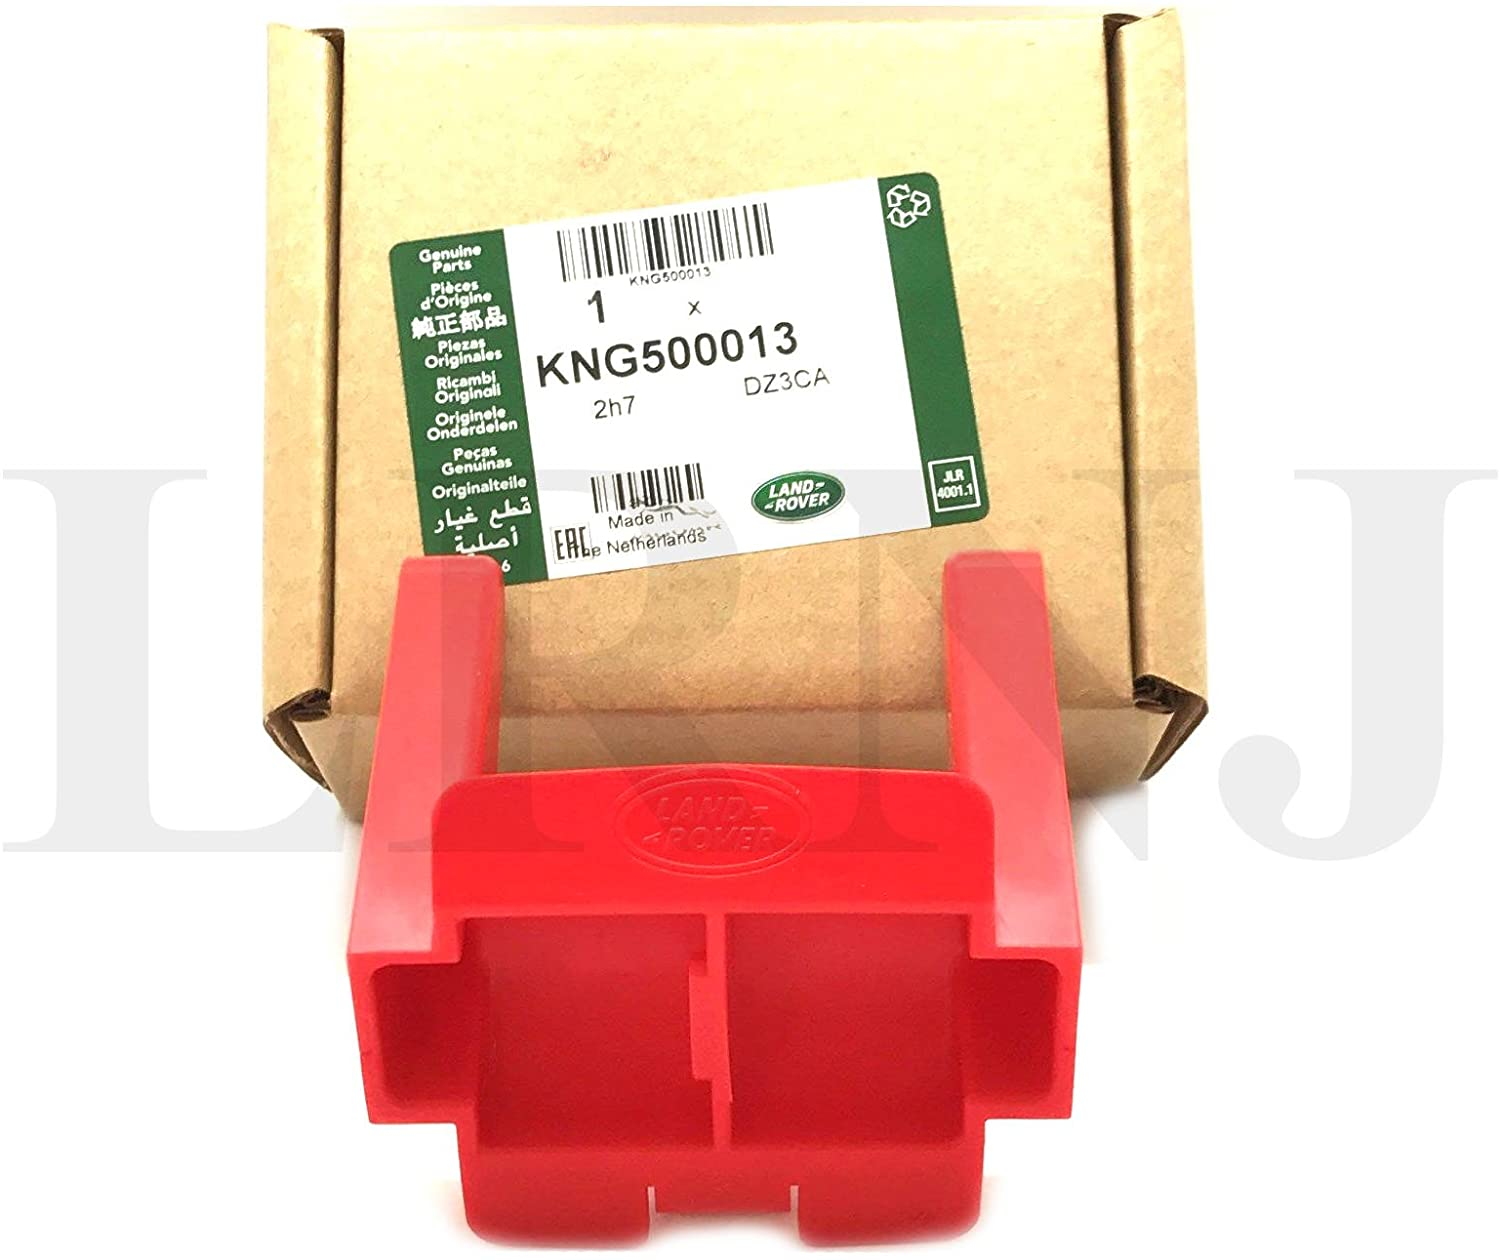 KNG500013 Land Rover Range Rover Sport Tow Hitch Cover Blanking Plug in Frame Part